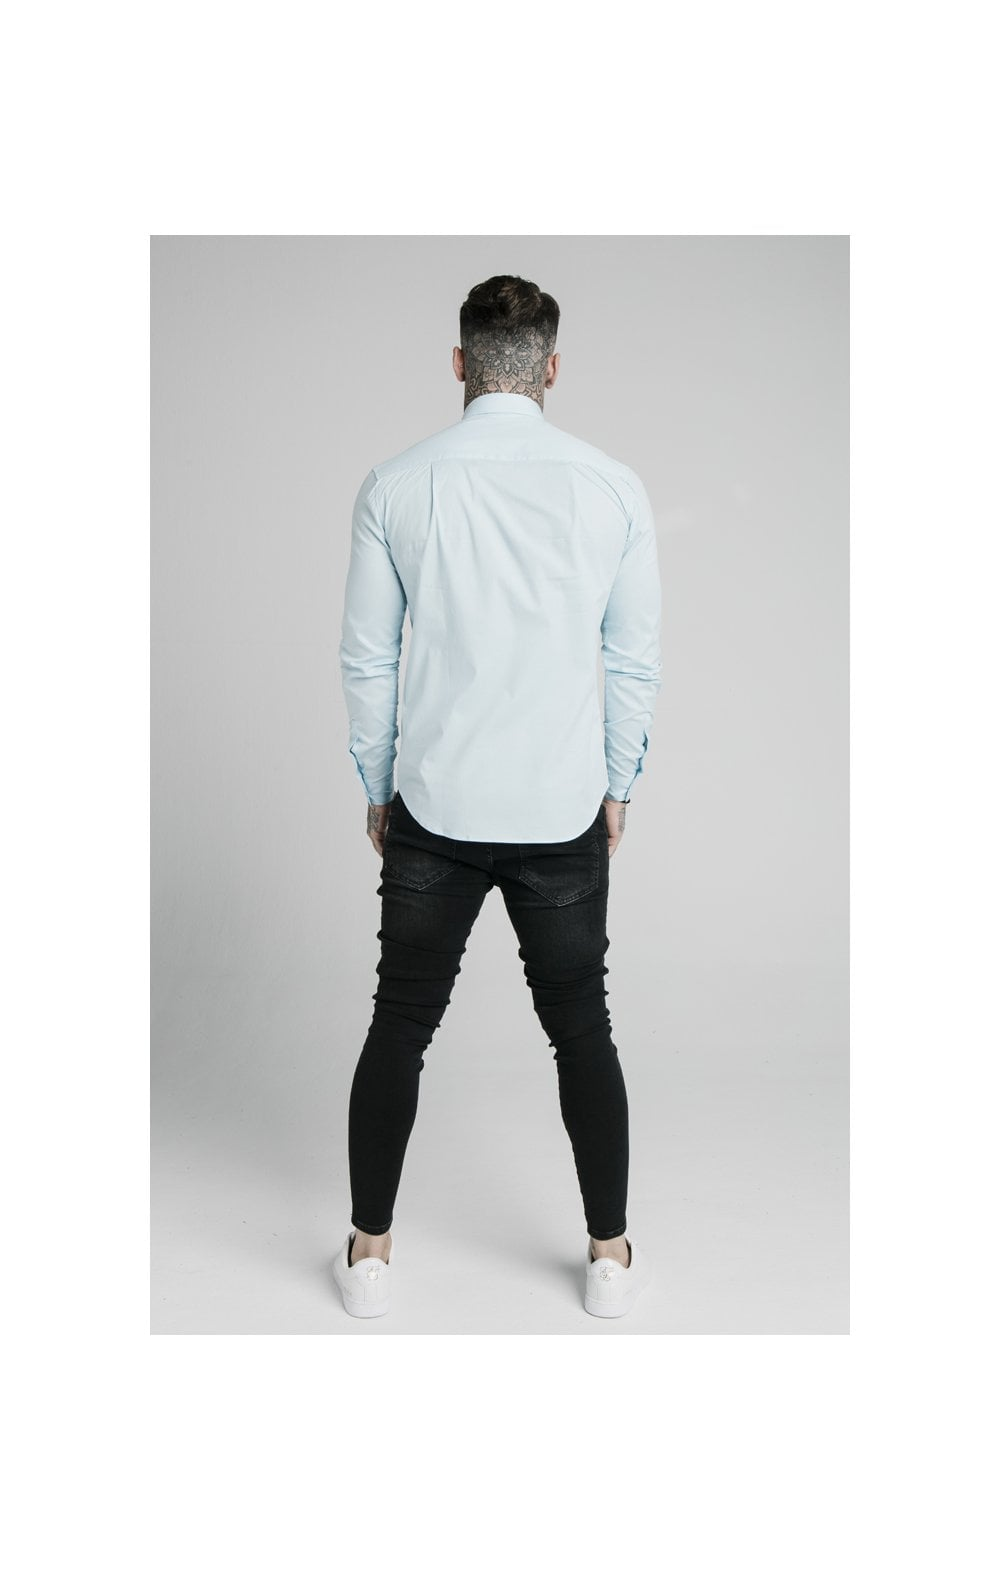 Load image into Gallery viewer, SikSilk L/S Cotton Stretch Shirt - Light Blue (5)